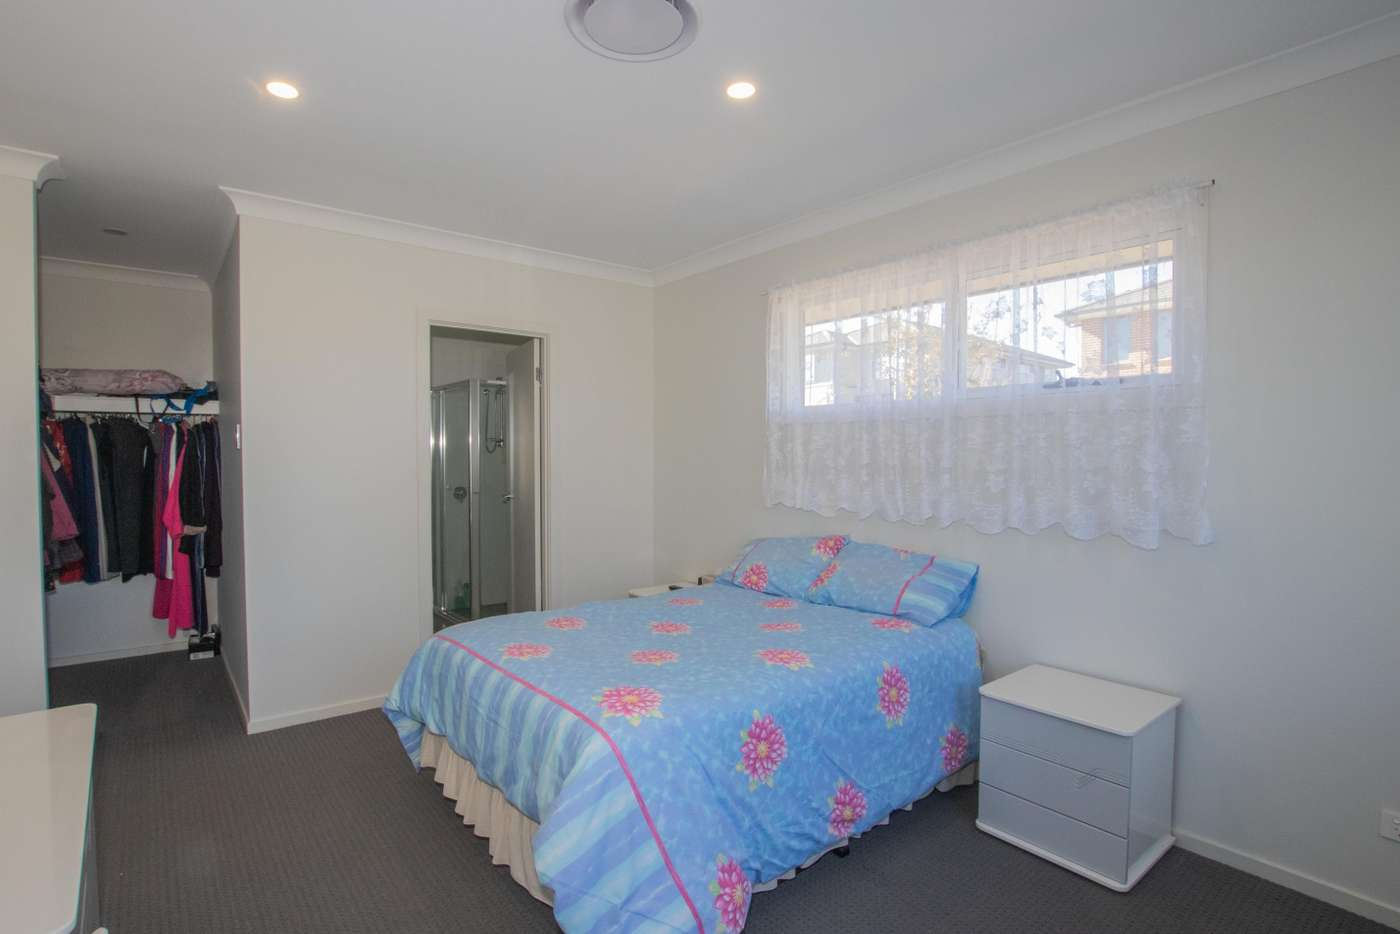 Sixth view of Homely house listing, 32 Bowen Circuit, Gledswood Hills NSW 2557